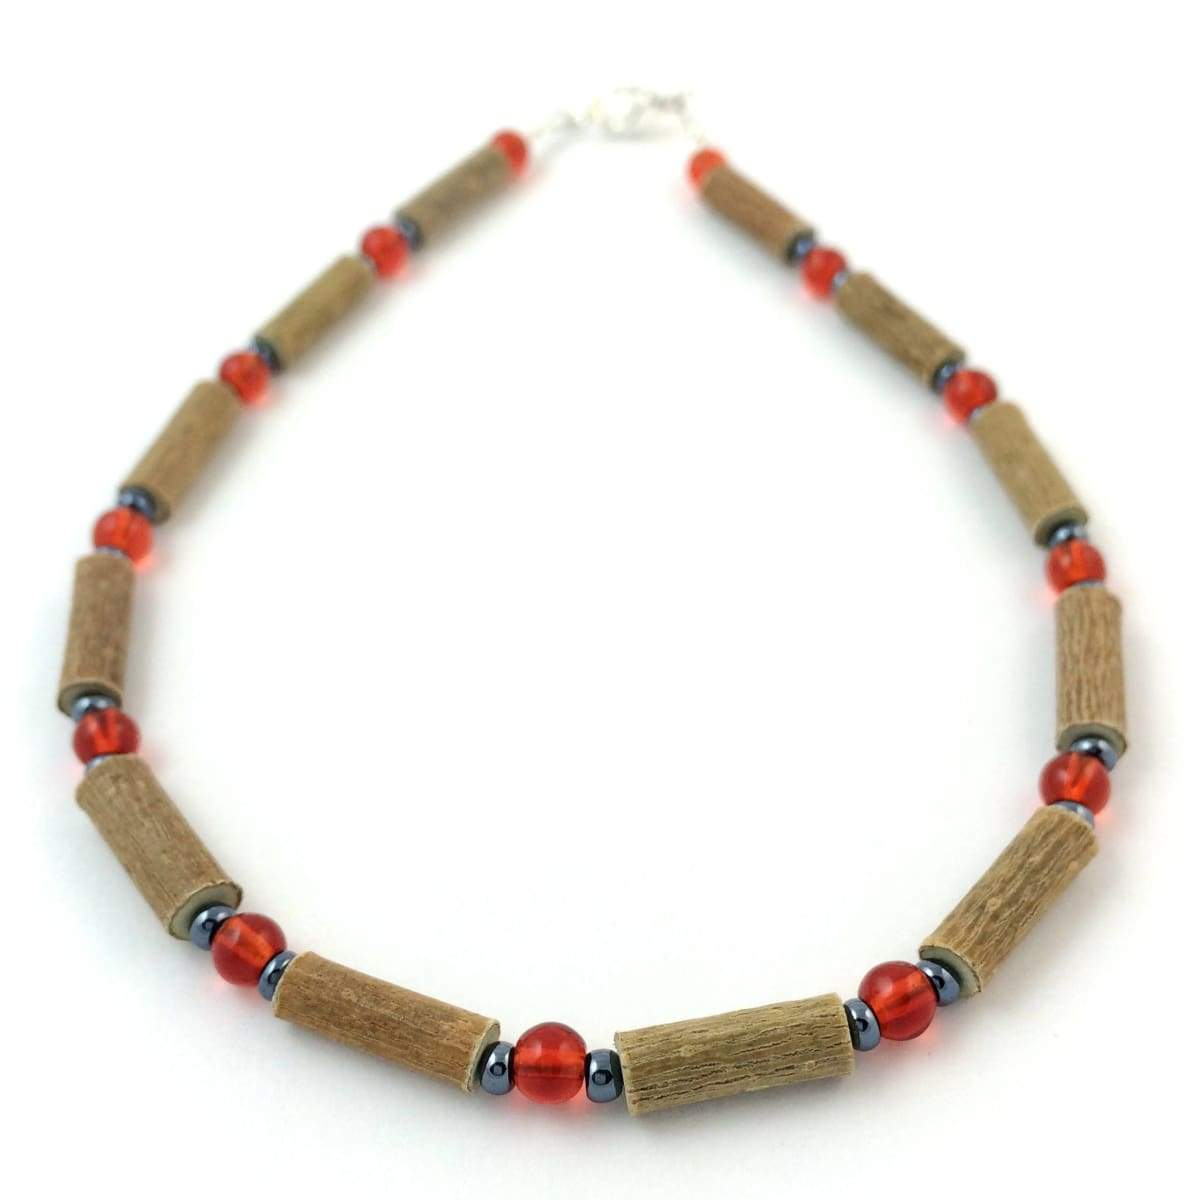 Hazelwood Red & Hematite - 11 Necklace - Lobster Claw Clasp - Hazelwood Jewelry